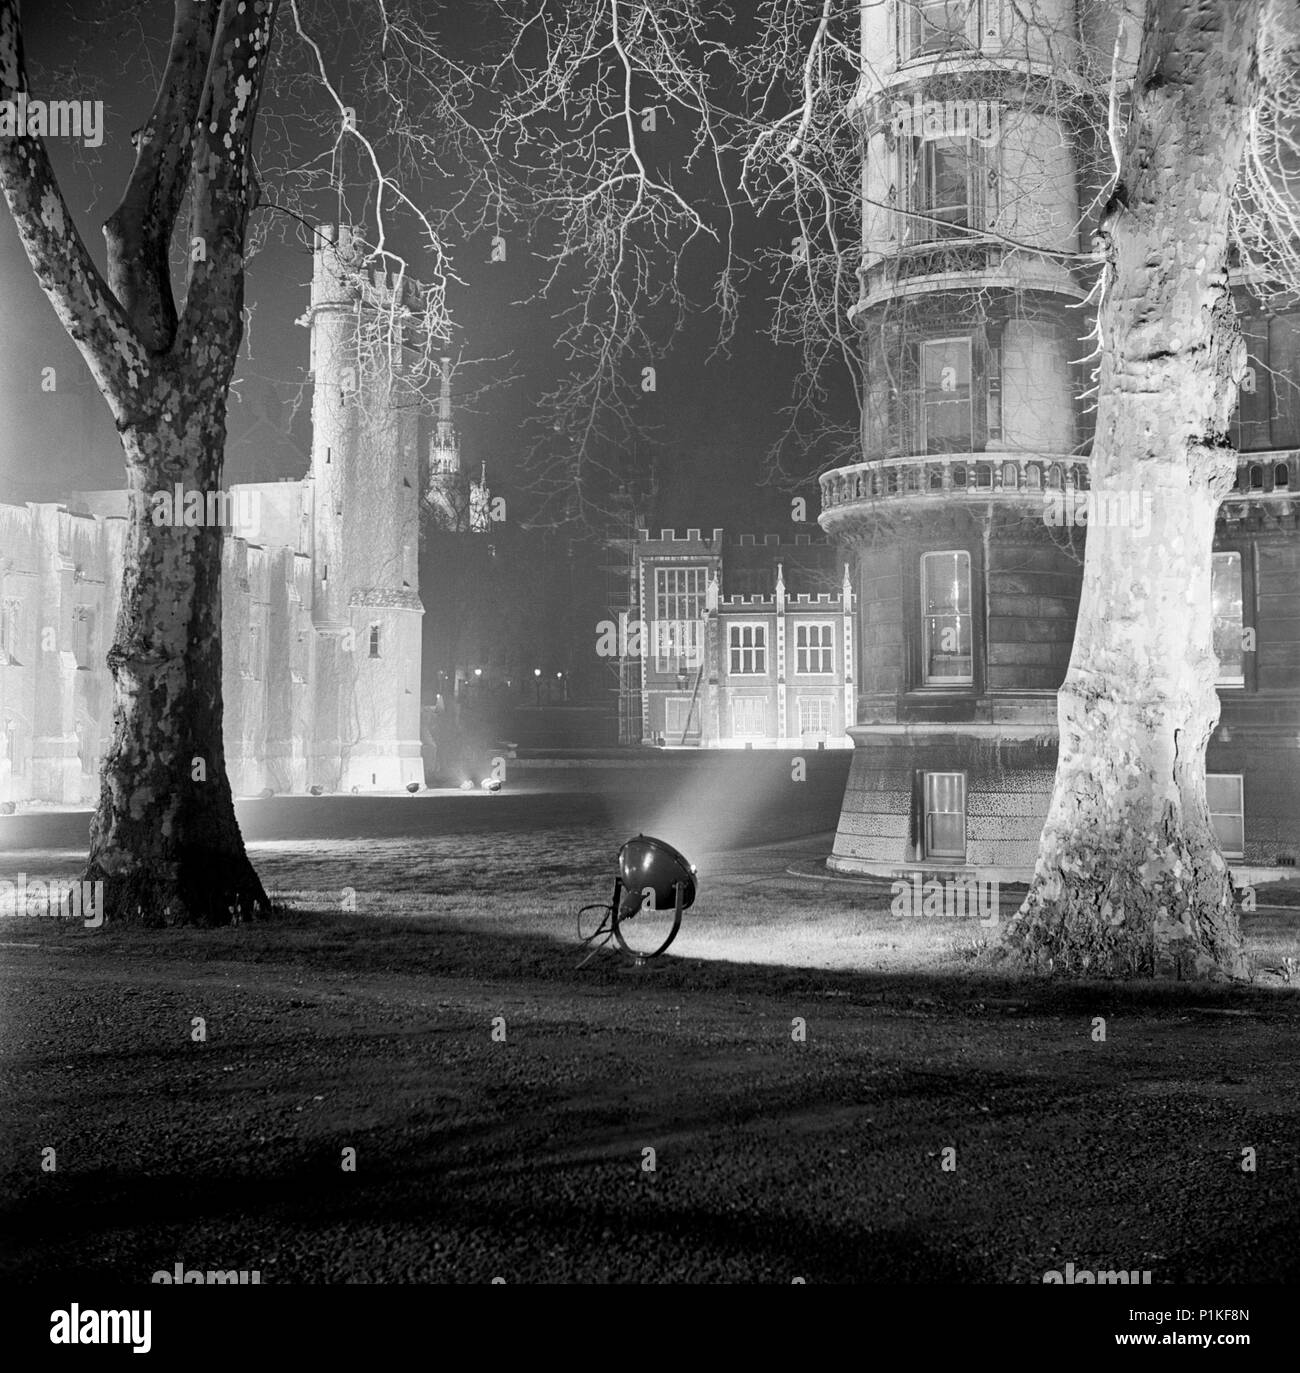 Temple Gardens, City of London, c1945-c1980. View of the gardens at night. - Stock Image